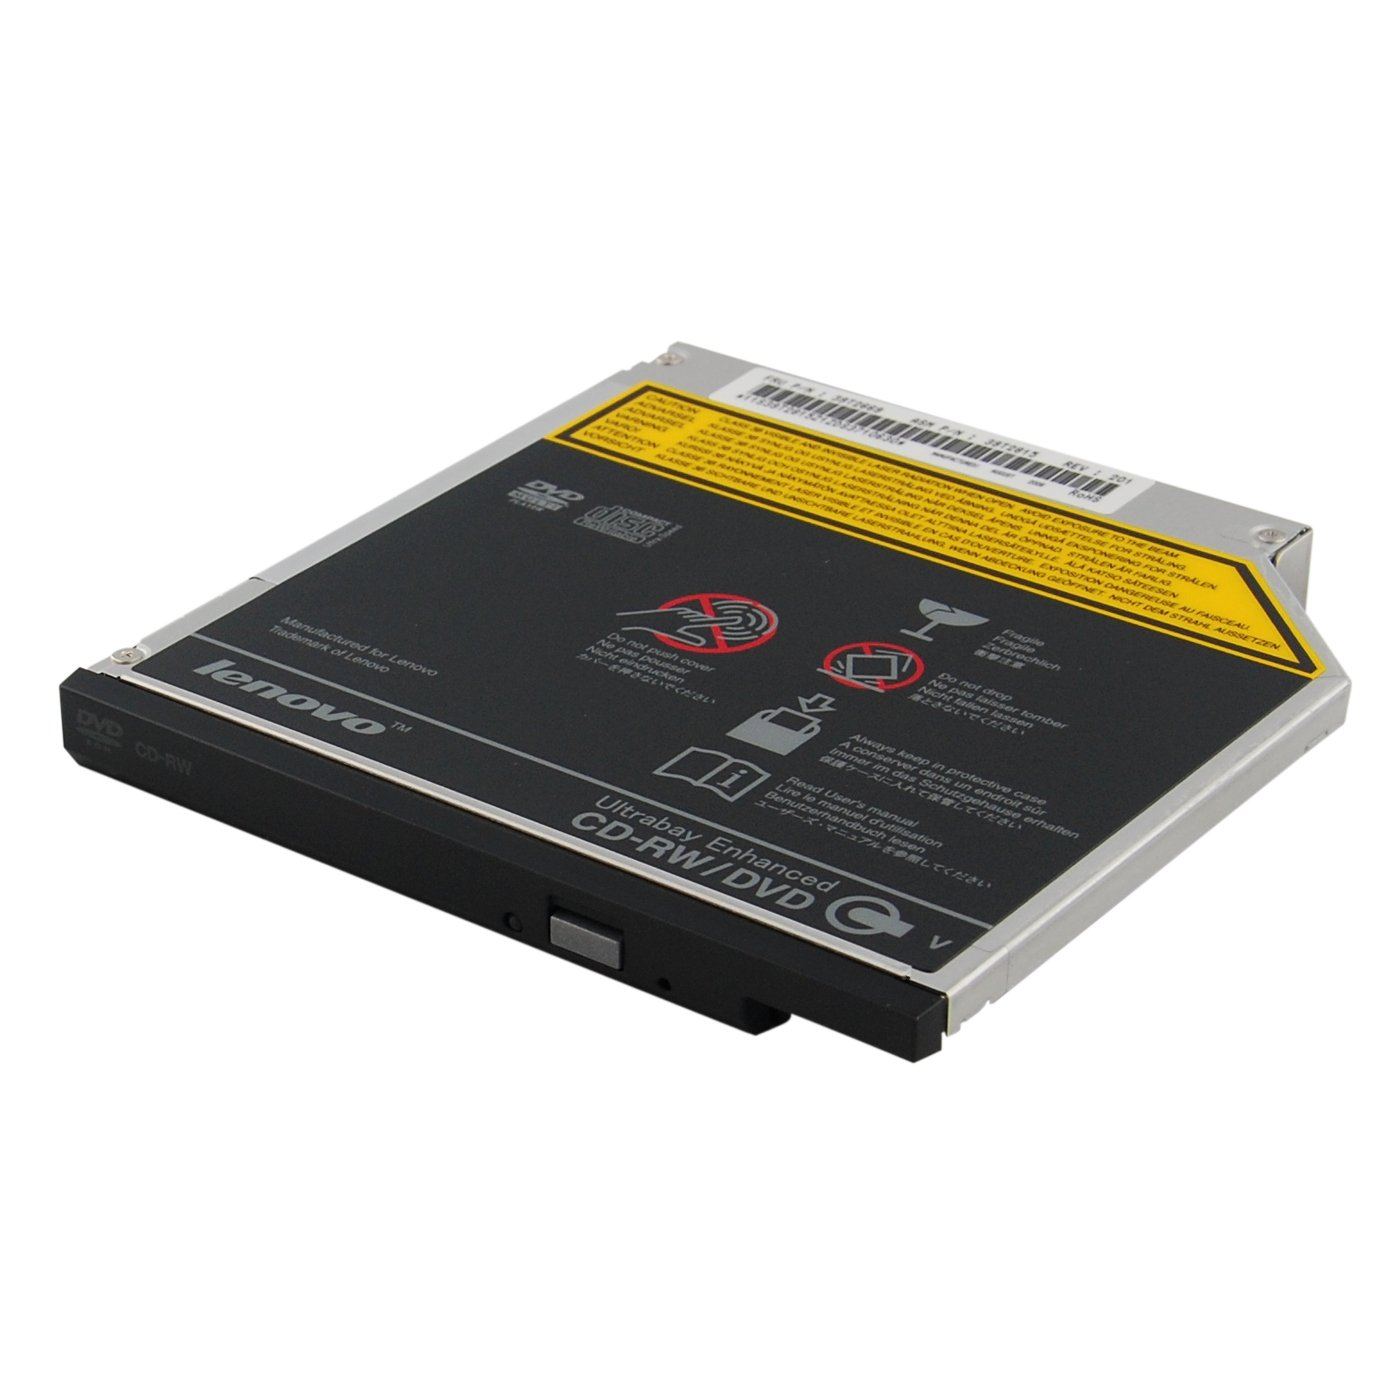 CD-RW/DVD Drive for IBM Lenovo Thinkpad Z60 Z61 R60 R60E R61 39T2669